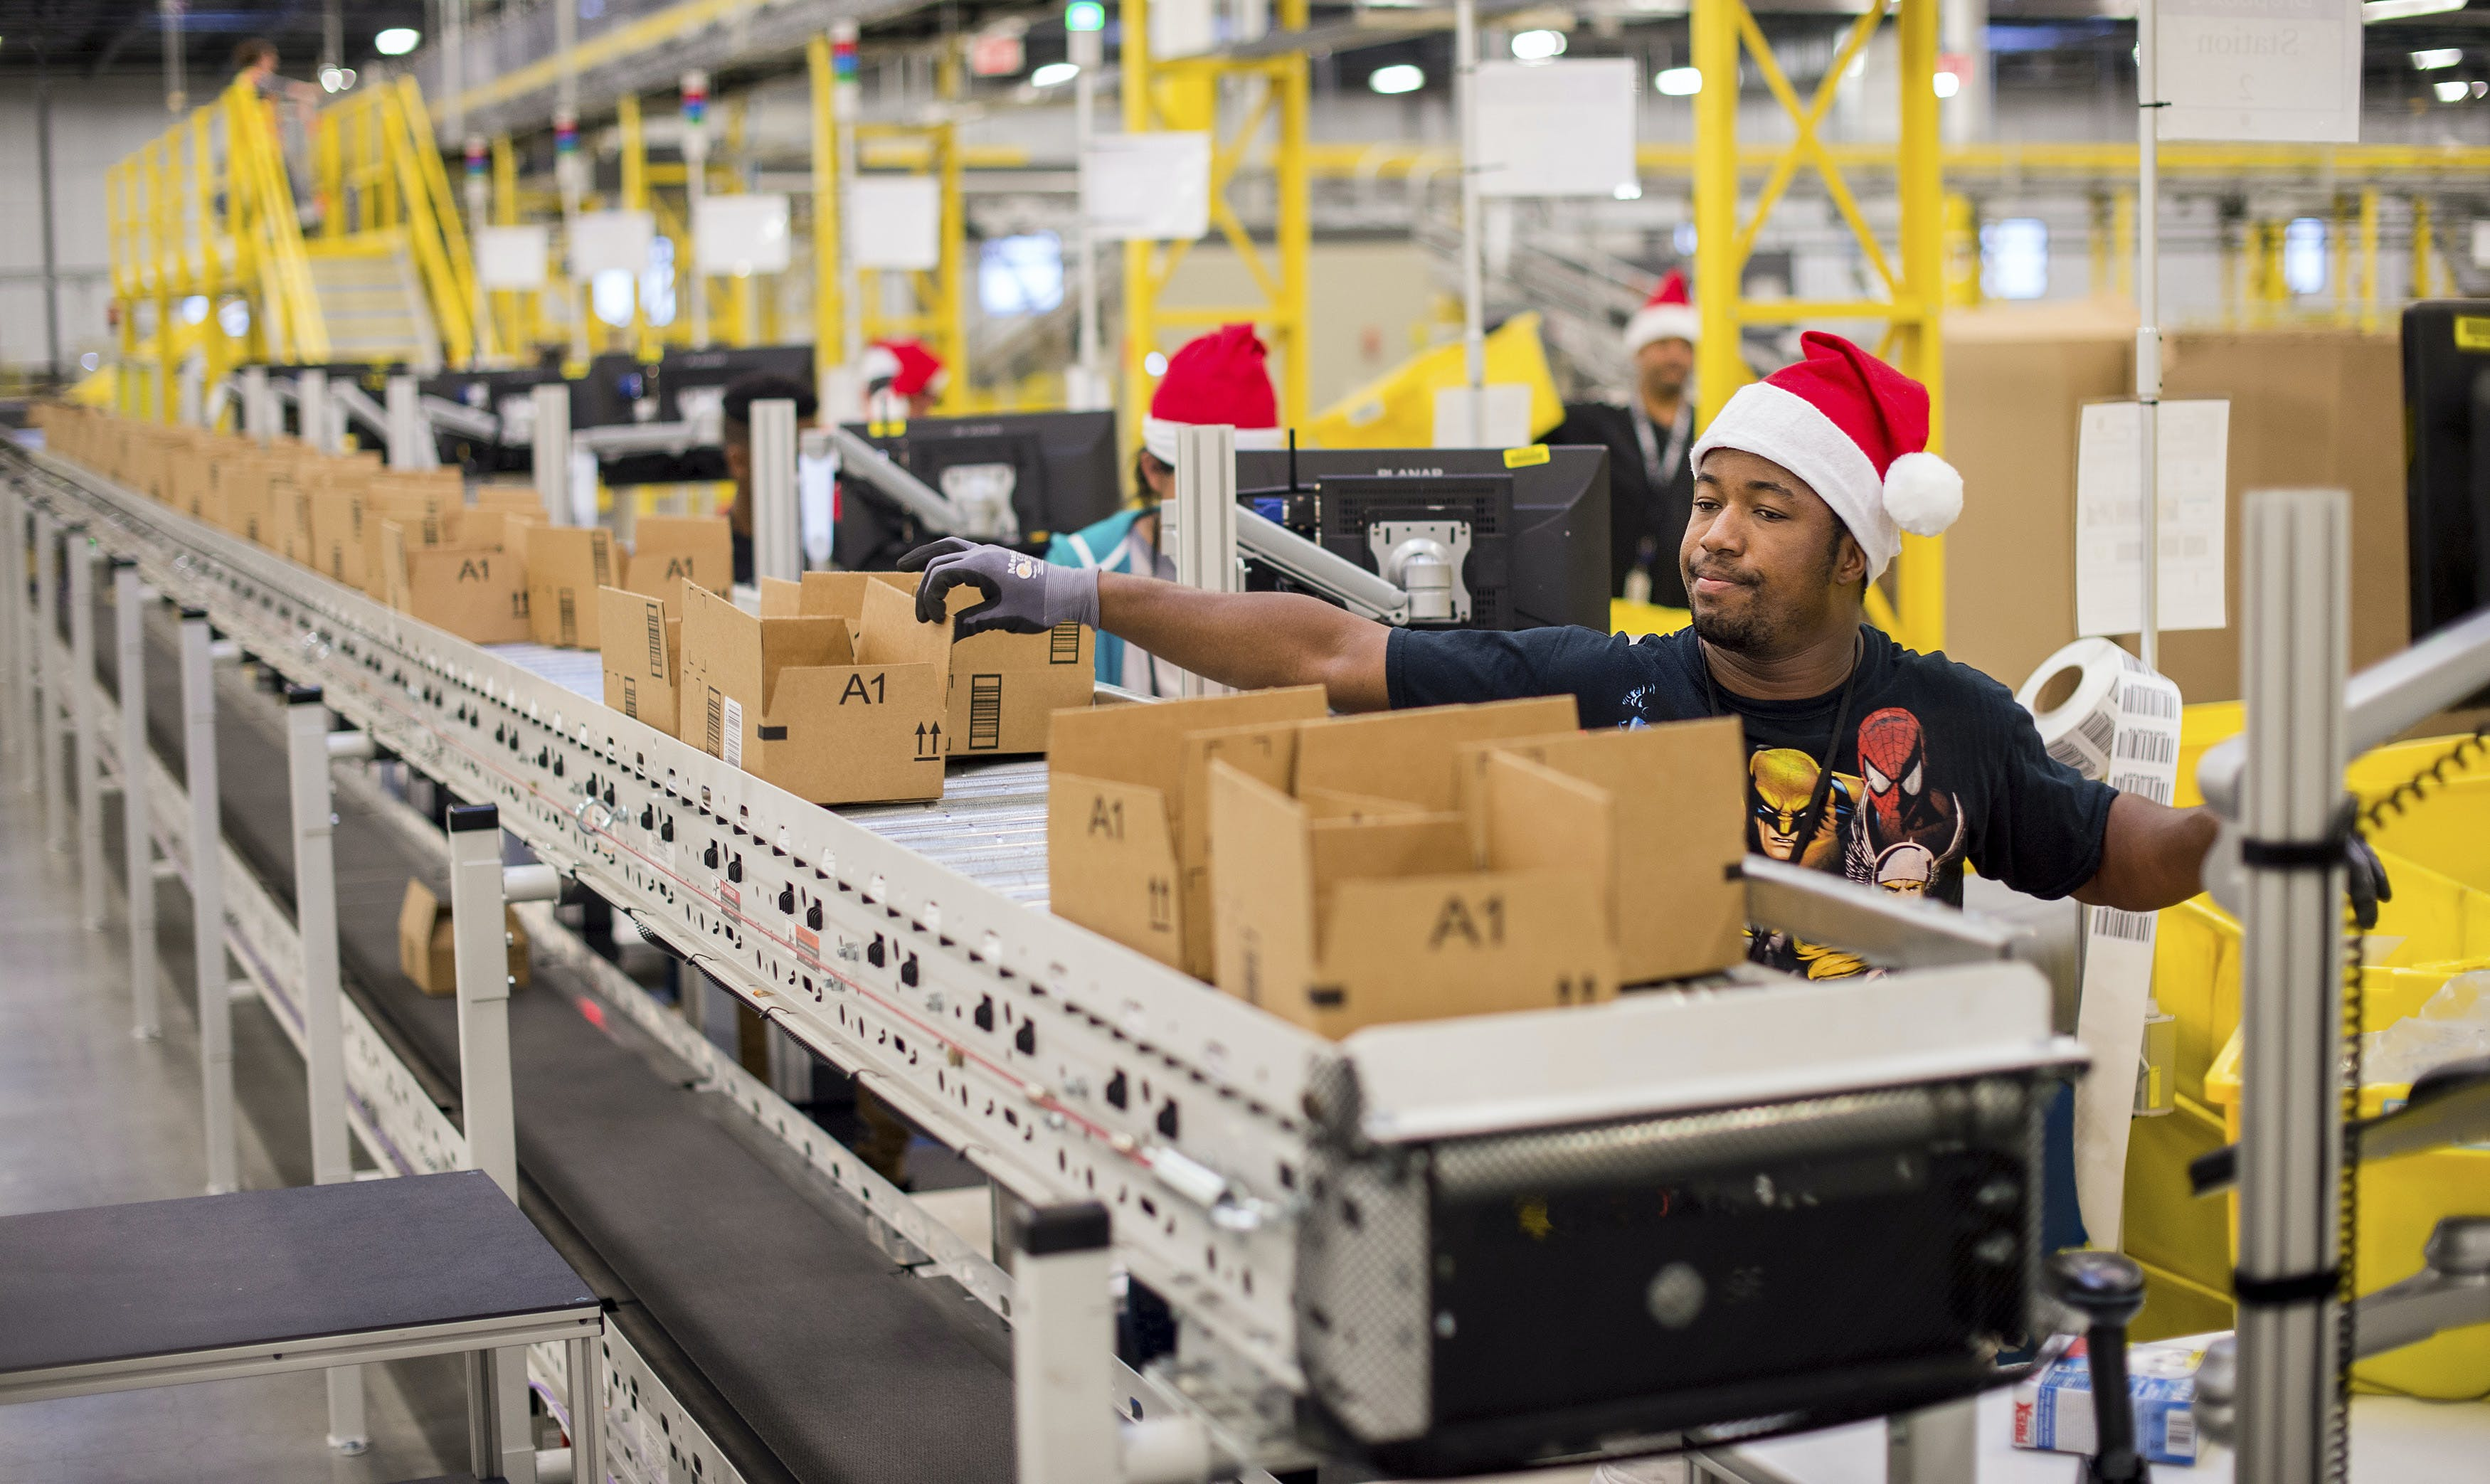 Workers pack items at an Amazon Fulfillment Center, ahead of the Christmas rush, in Tracy, California, November 30, 2014. REUTERS/Noah Berger  (UNITED STATES - Tags: BUSINESS SOCIETY) - RTR4G74K